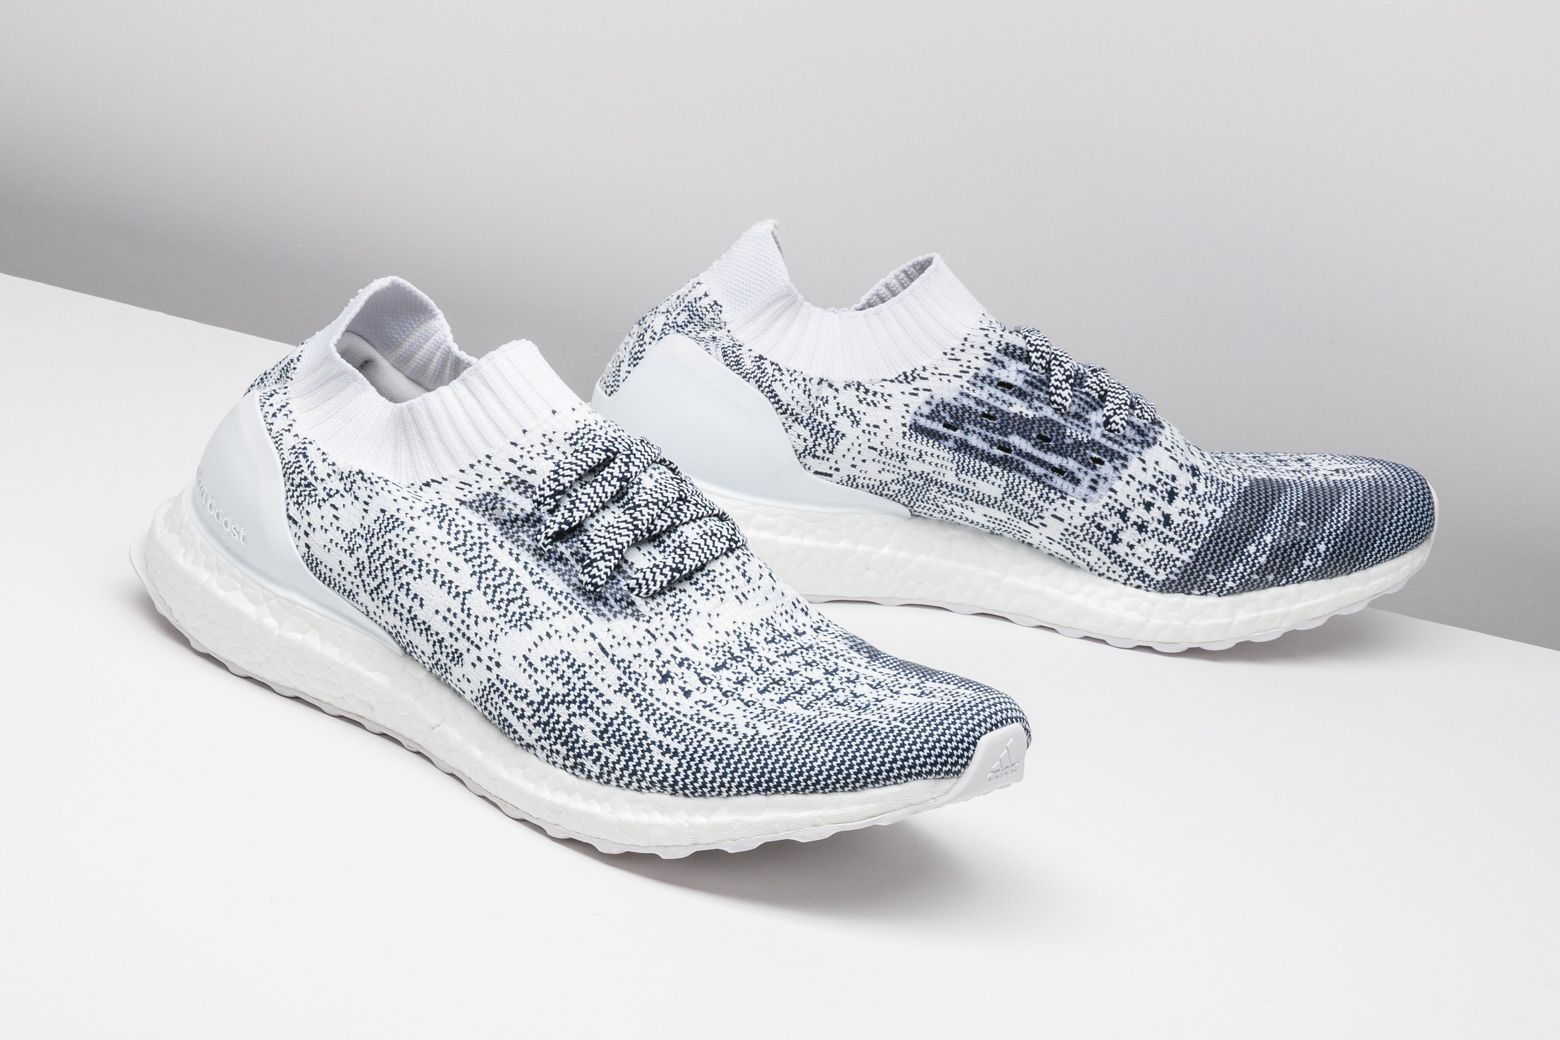 8a8a86c0c1794 UltraBOOST Uncaged